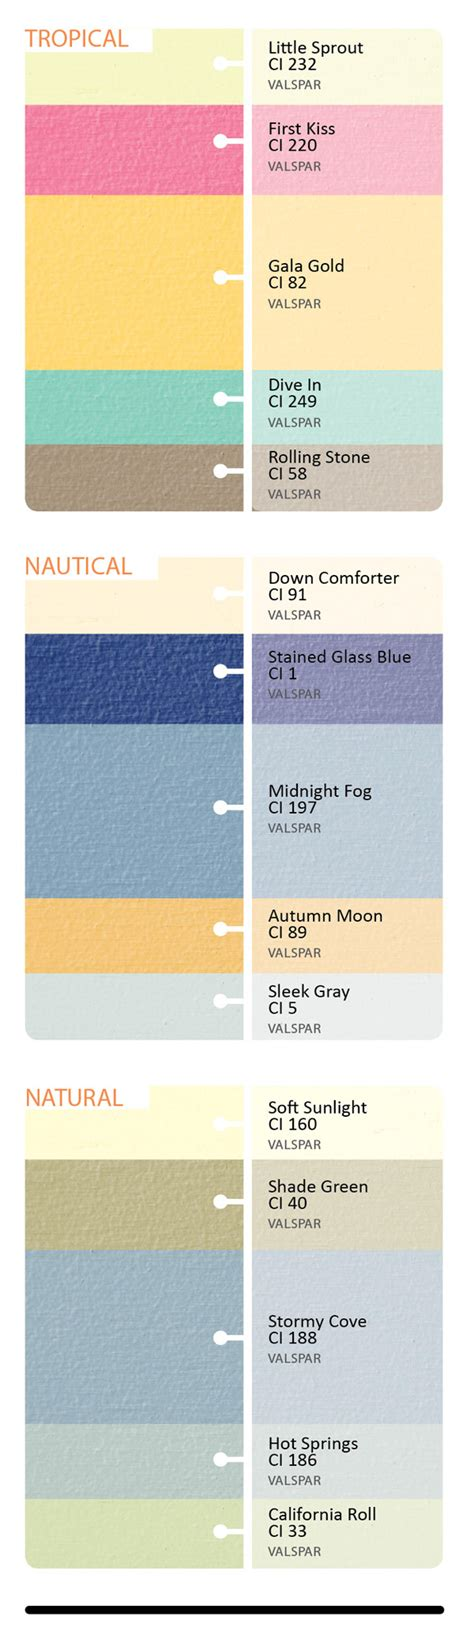 lowes behr paint colors ideas home depot waterproof paint home painting ideas behr paints behr